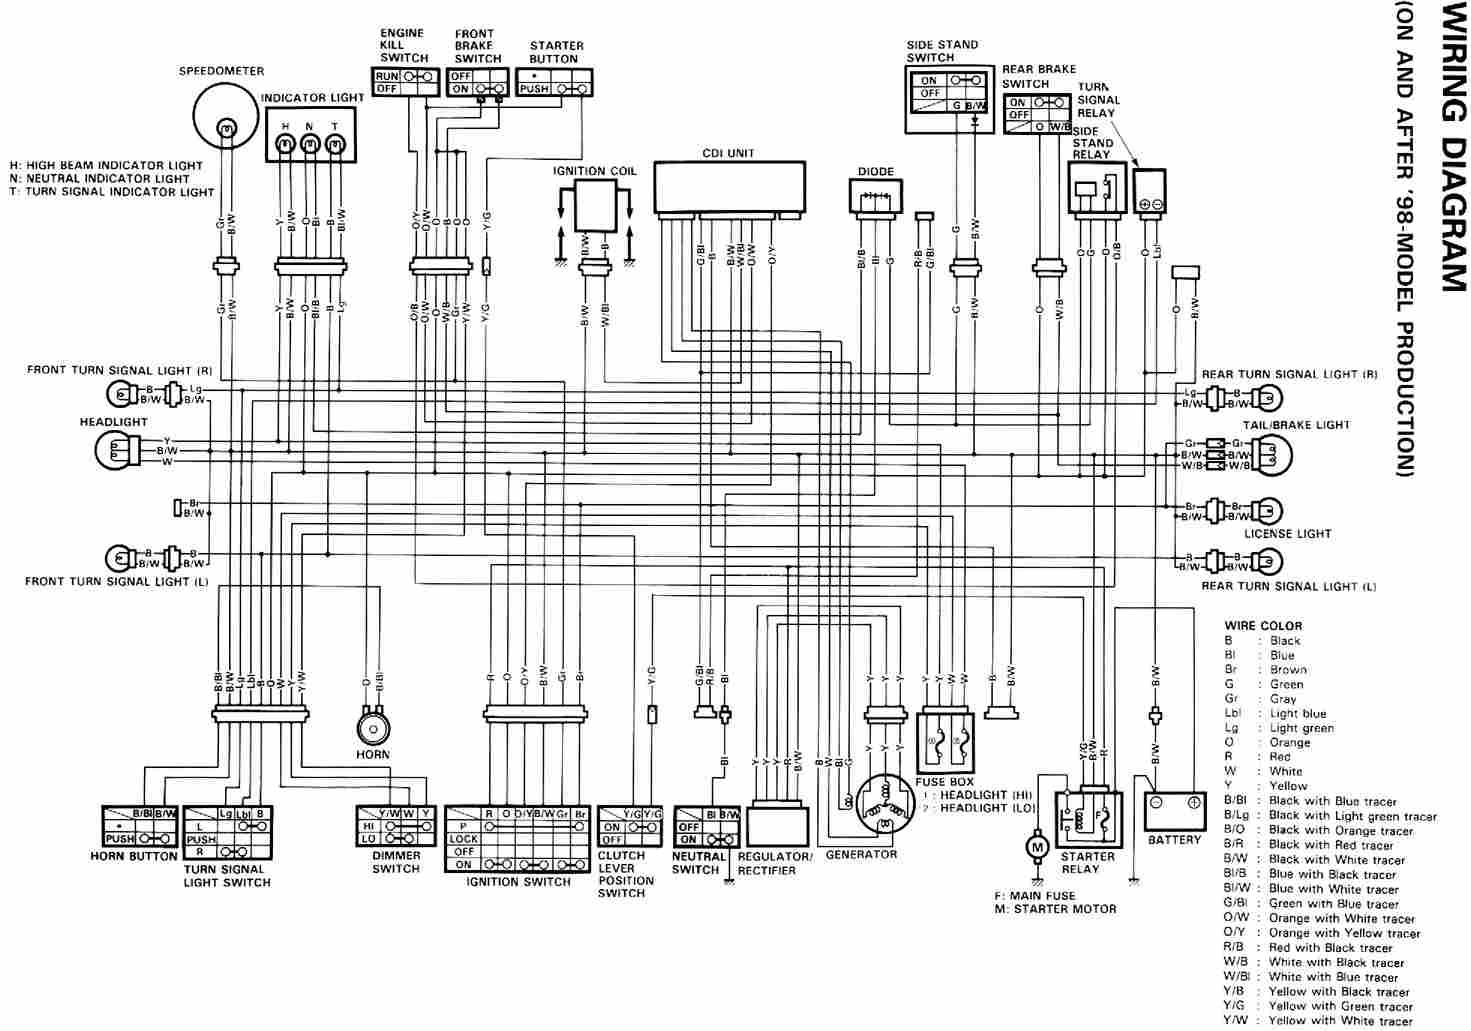 1986 Honda Vt700 Shadow Wiring Diagram